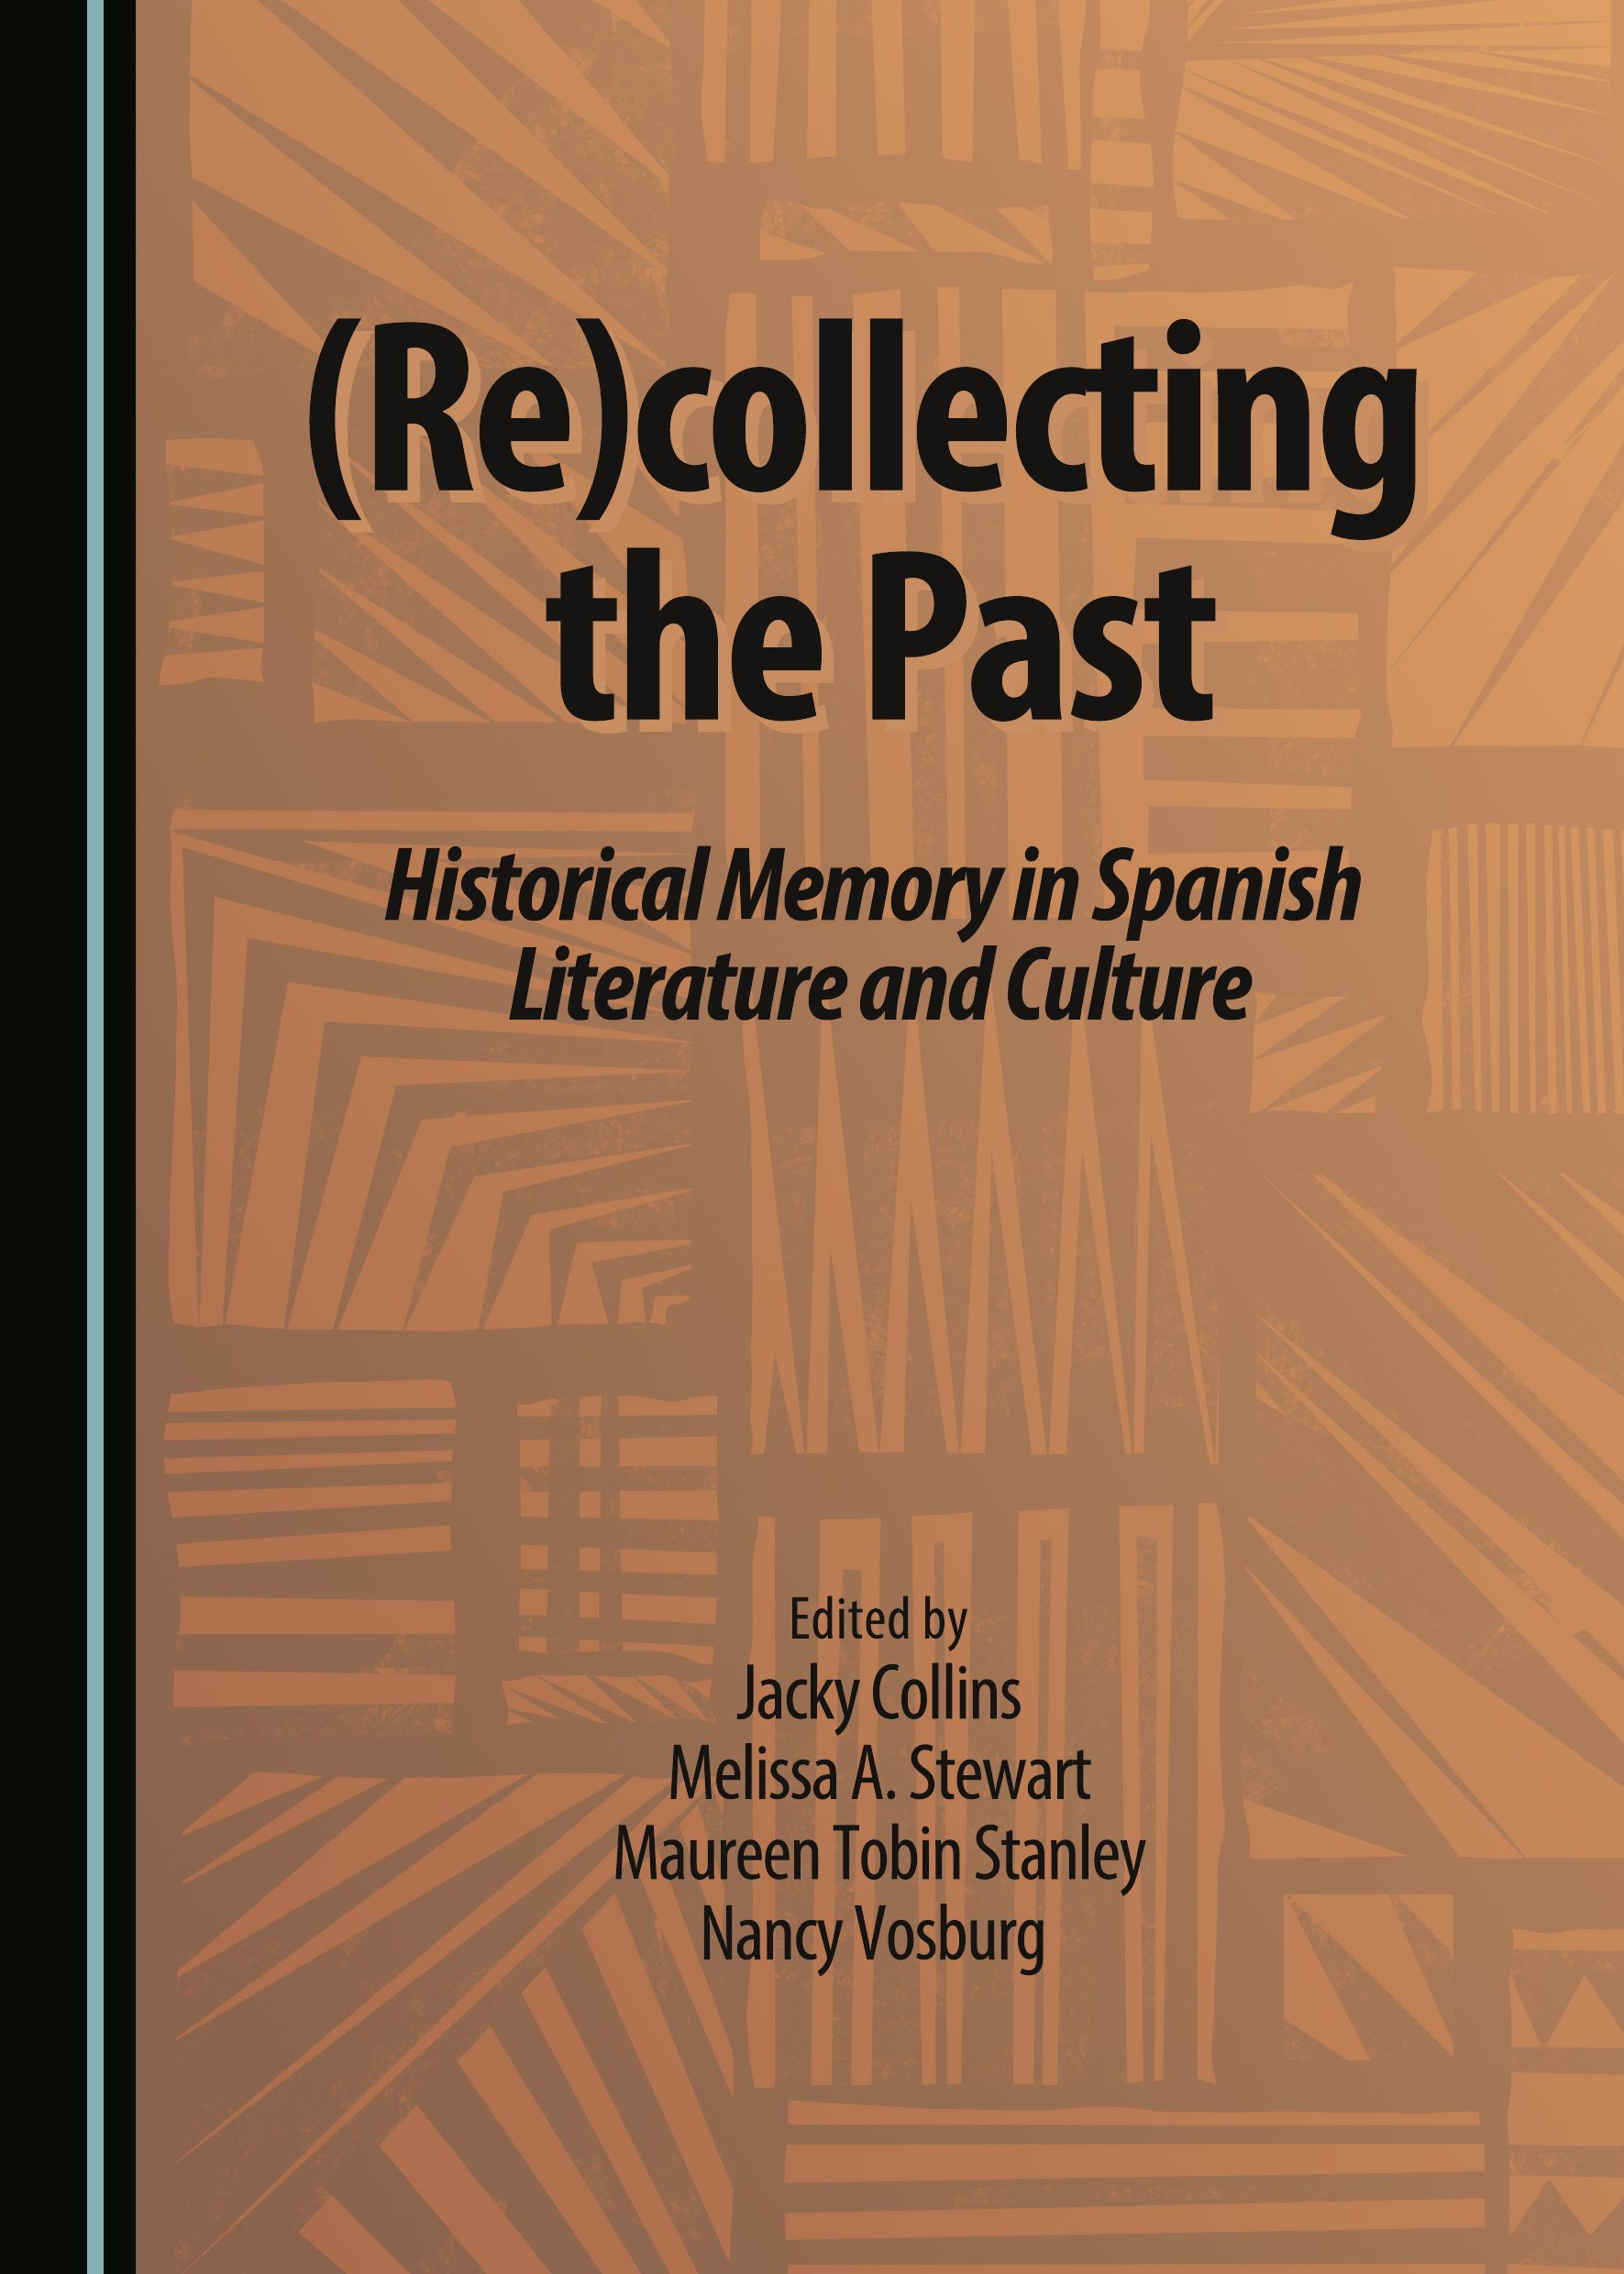 (Re)collecting the Past: Historical Memory in Spanish Literature and Culture